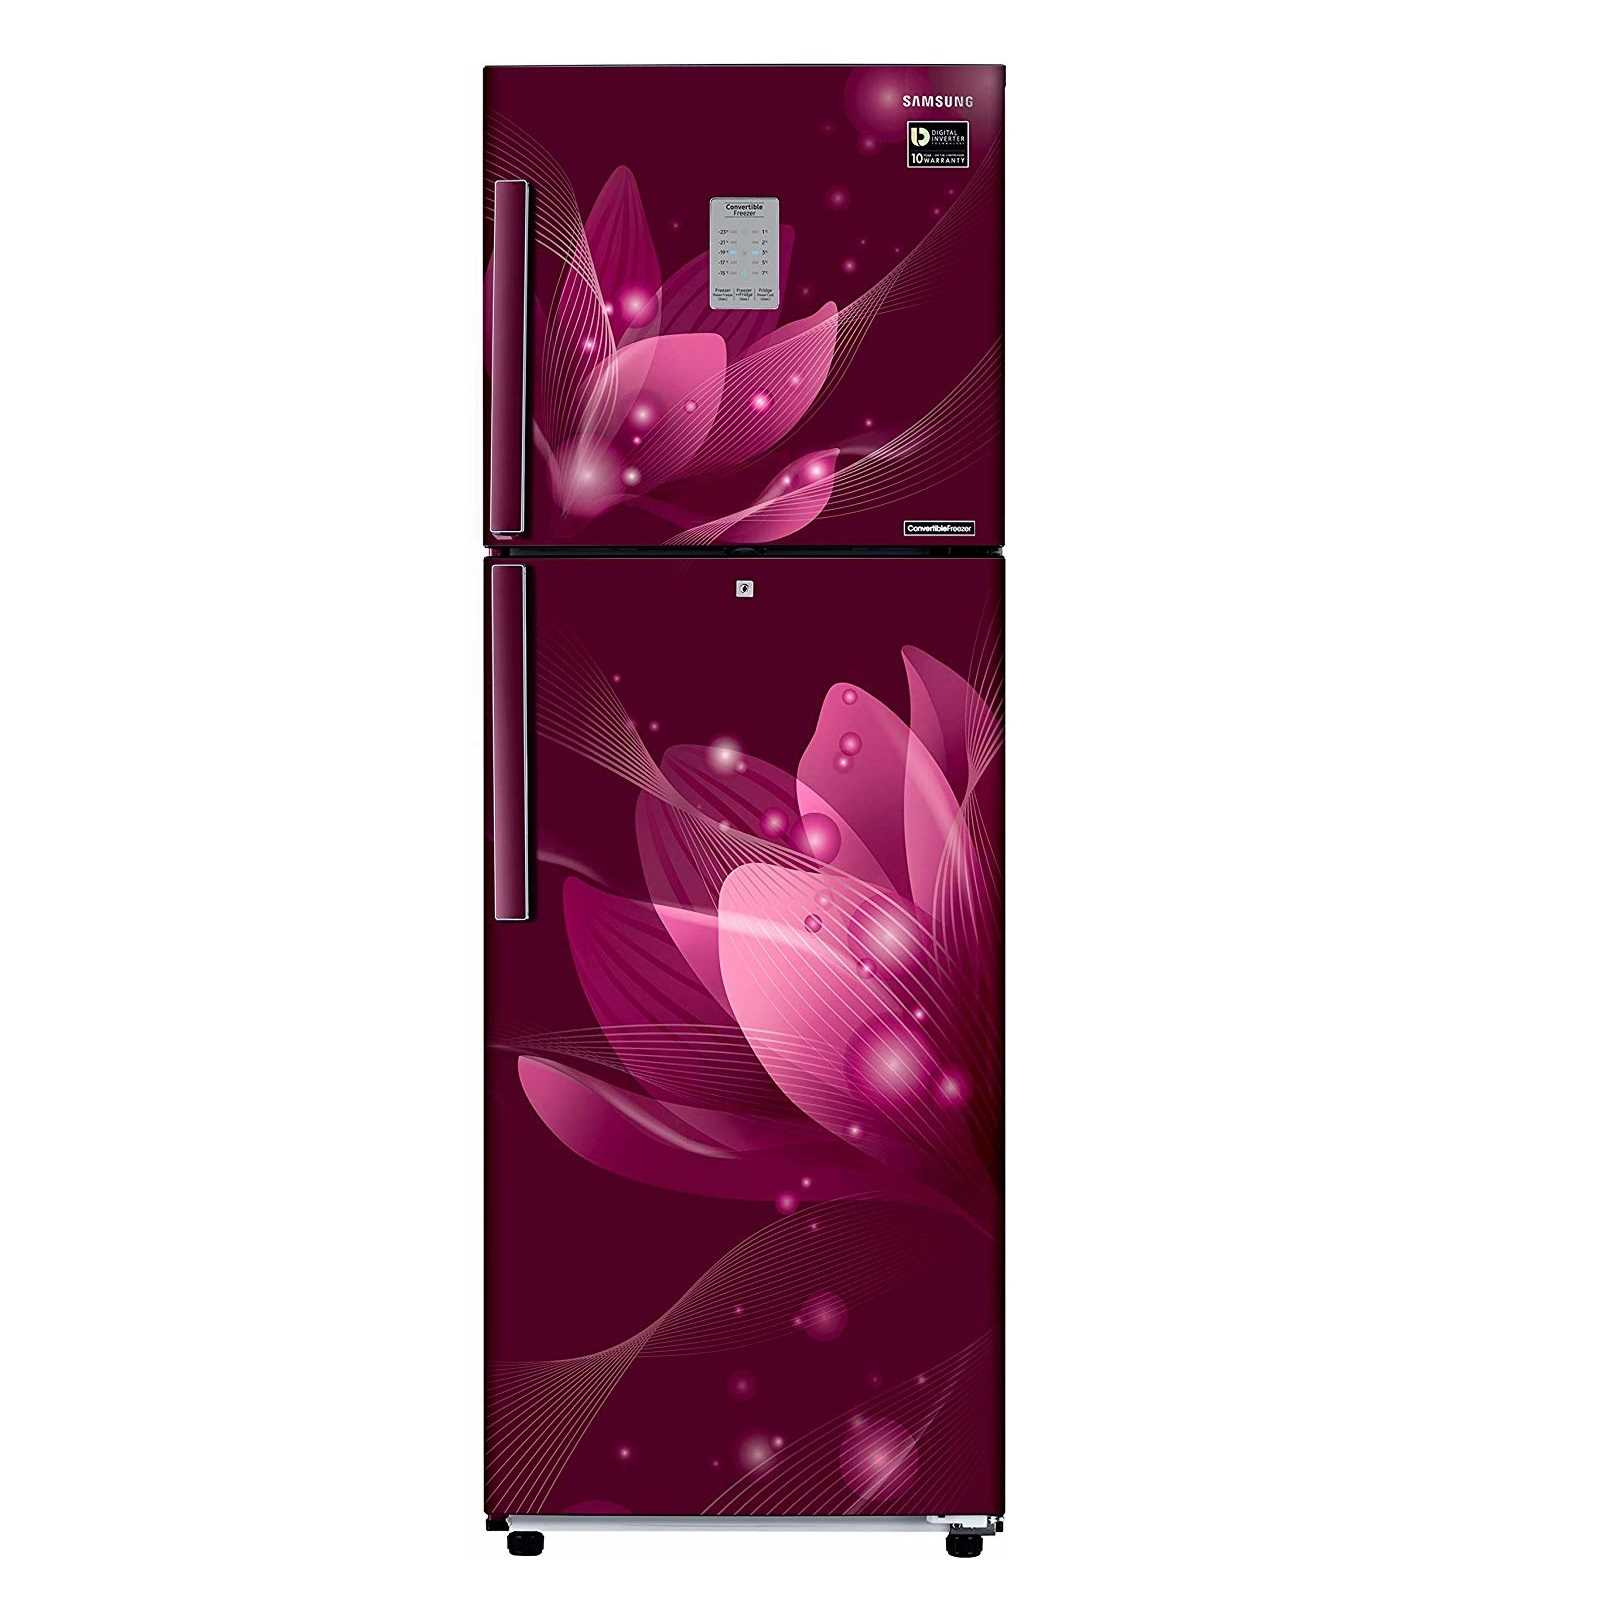 Samsung RT28N3923R8 HL 253 Litre 3 Star Frost Free Double Door Refrigerator